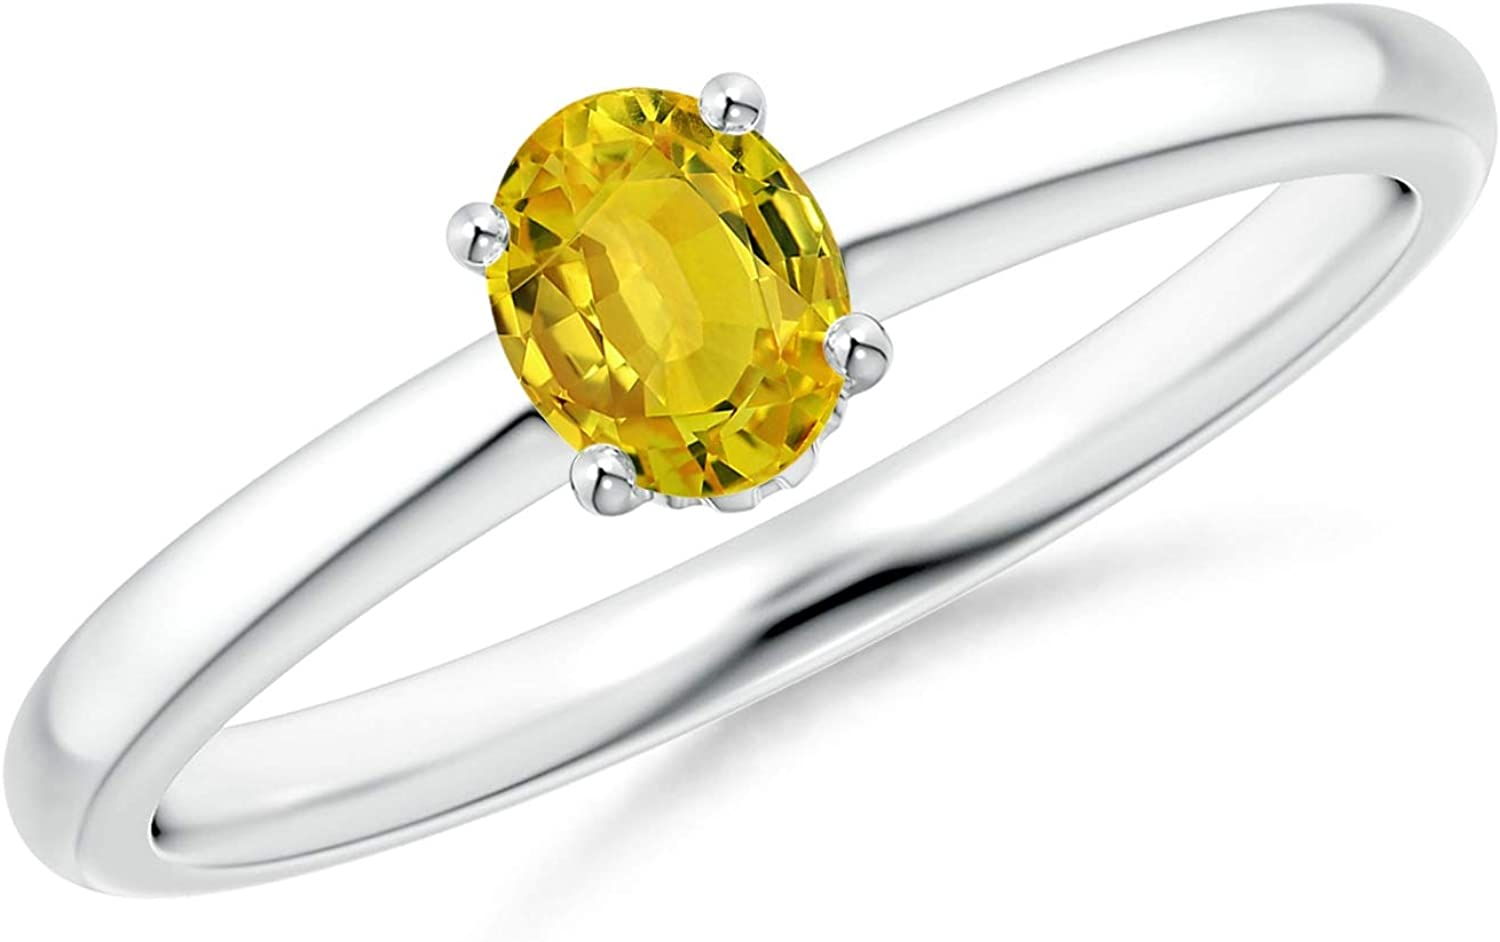 Classic Solitaire Oval Yellow Sapphire Promise Ring (5x4mm Yellow Sapphire)